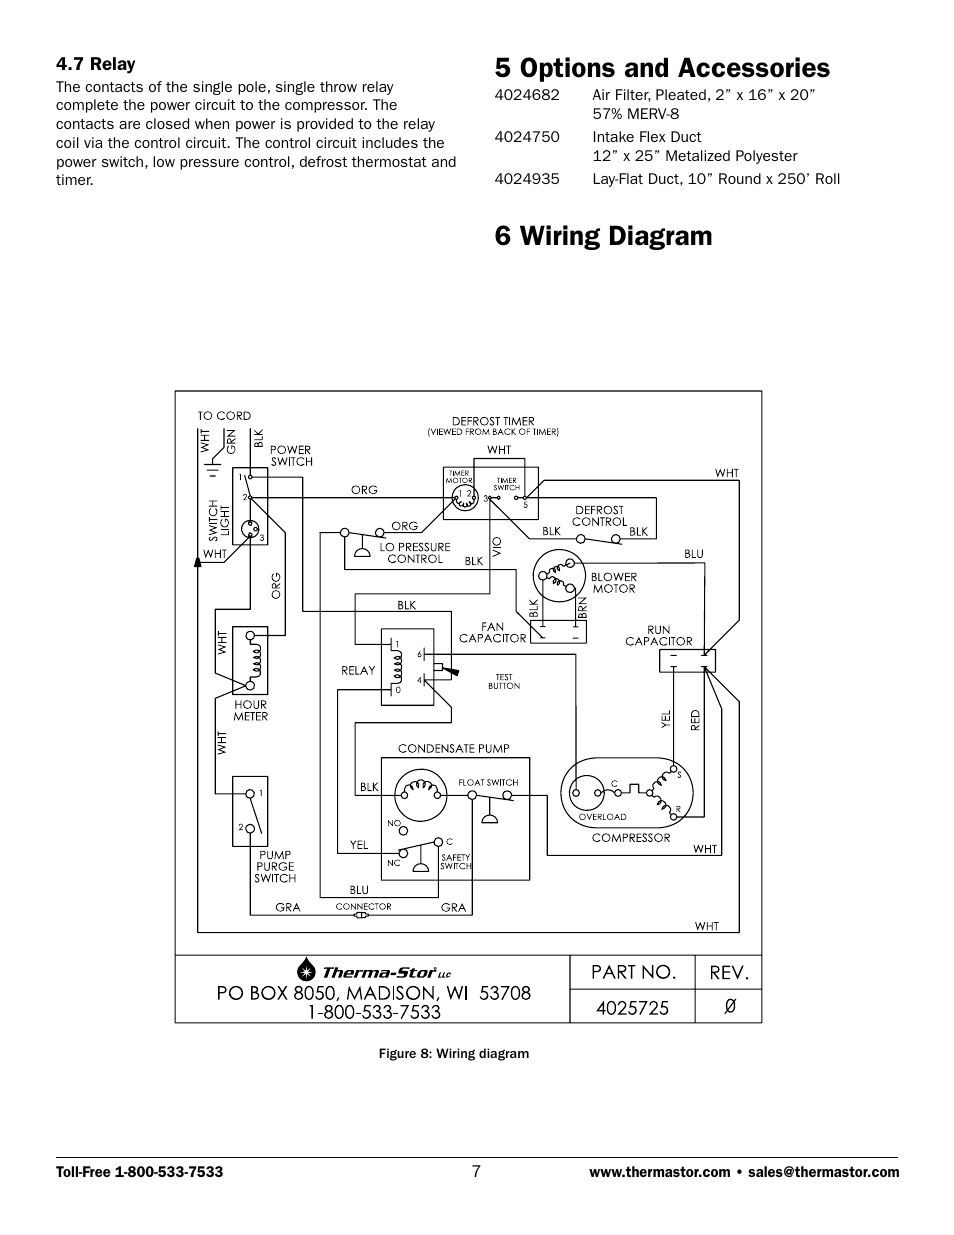 medium resolution of 5 options and accessories 6 wiring diagram therma stor products phoenix air valve wiring diagram phoenix wiring diagram